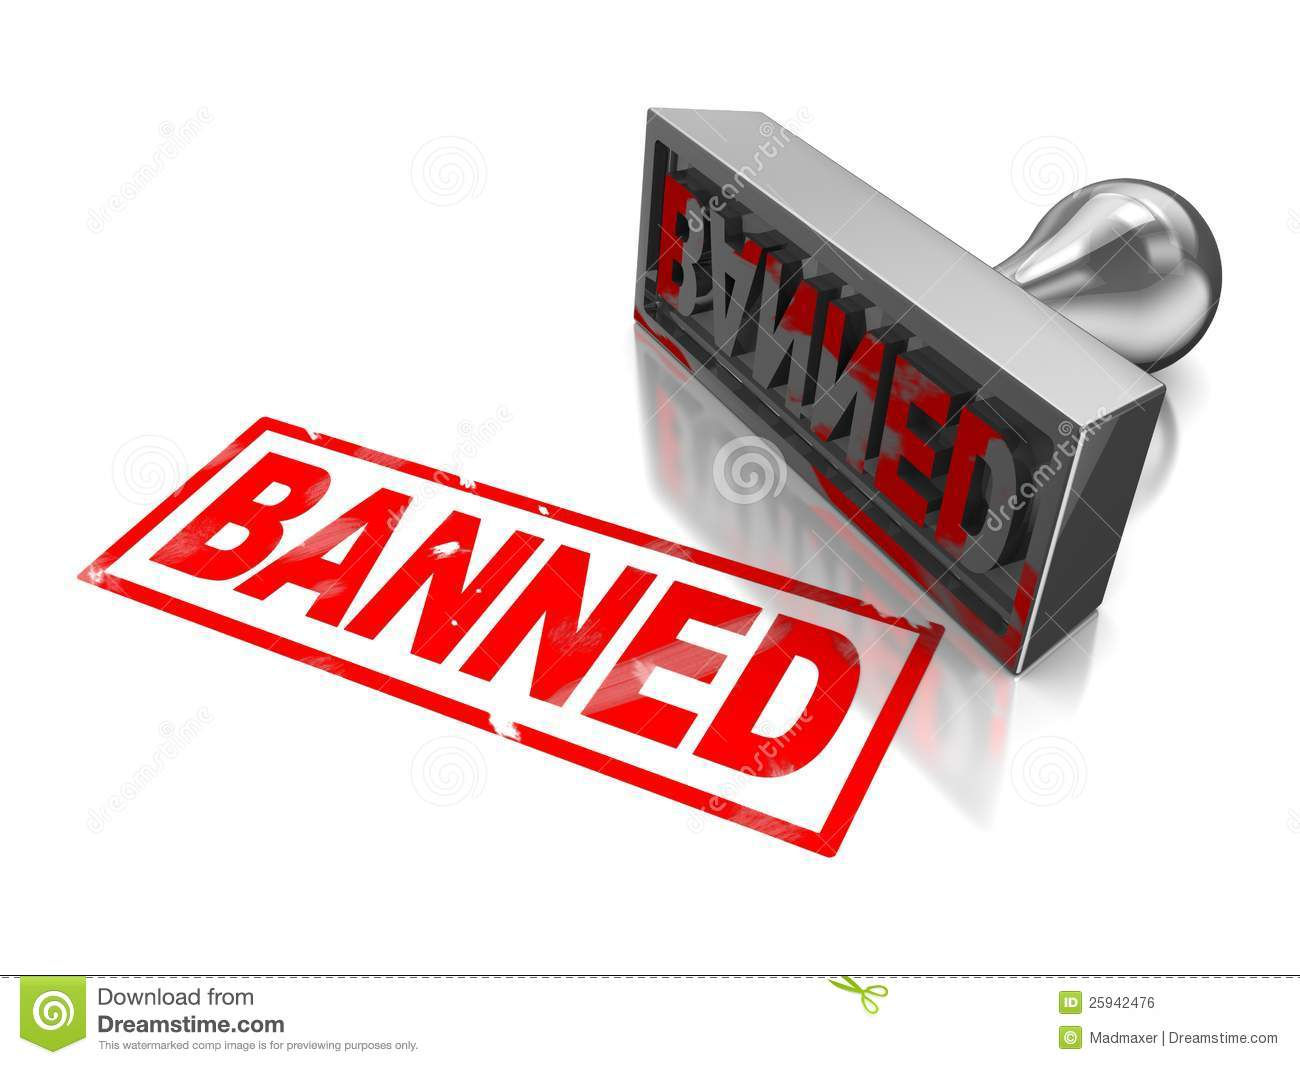 banned stamp stock photos - photo #38